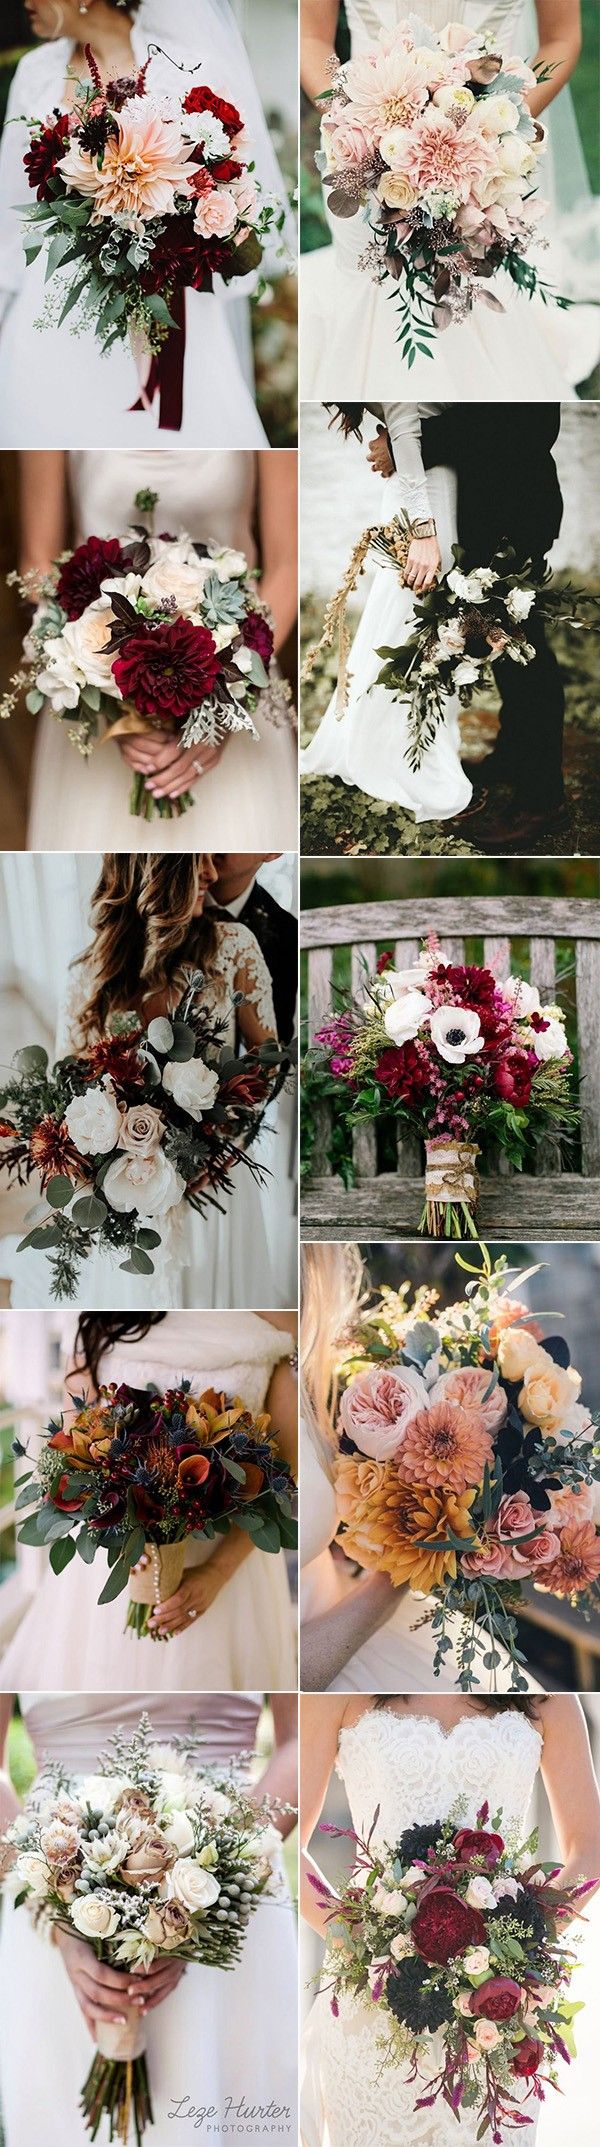 trending fall wedding bouquets for 2018